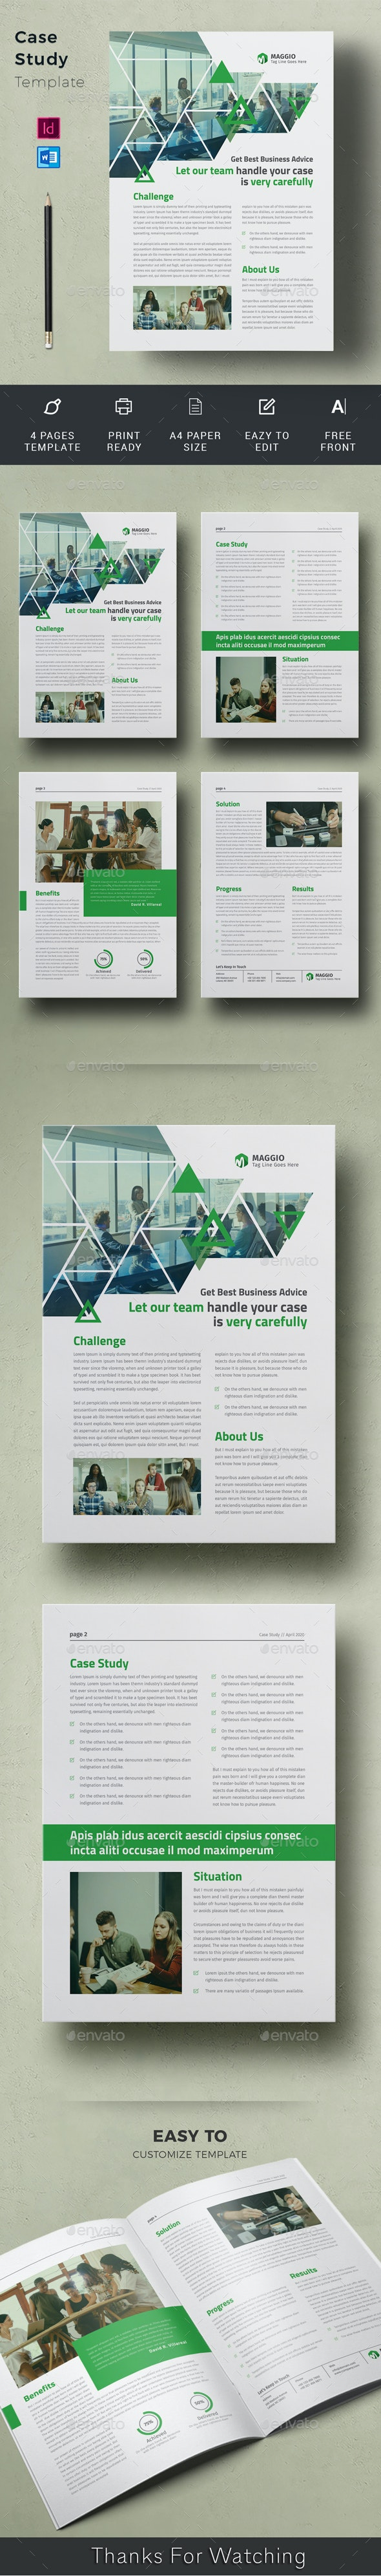 Case Study - Newsletters Print Templates